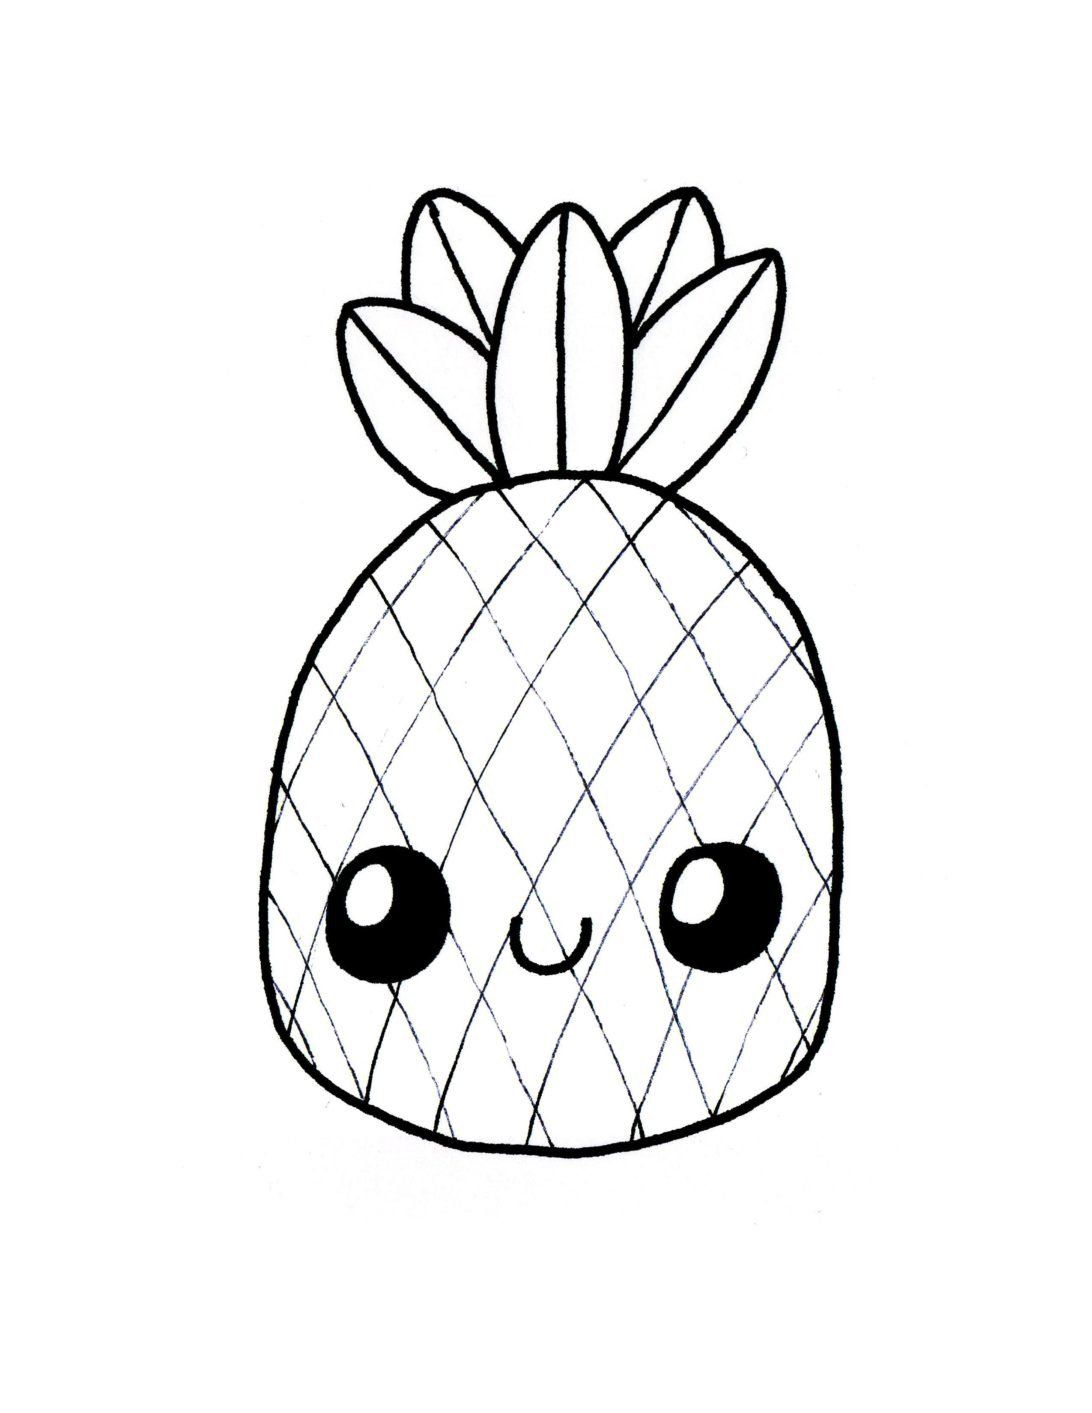 Coloring Pages That Are Cute Top 11 Exemplary Coloring Pages Kawaii Print Unusual Pokemon Coloring Pages Pokemon Coloring Cute Easy Drawings